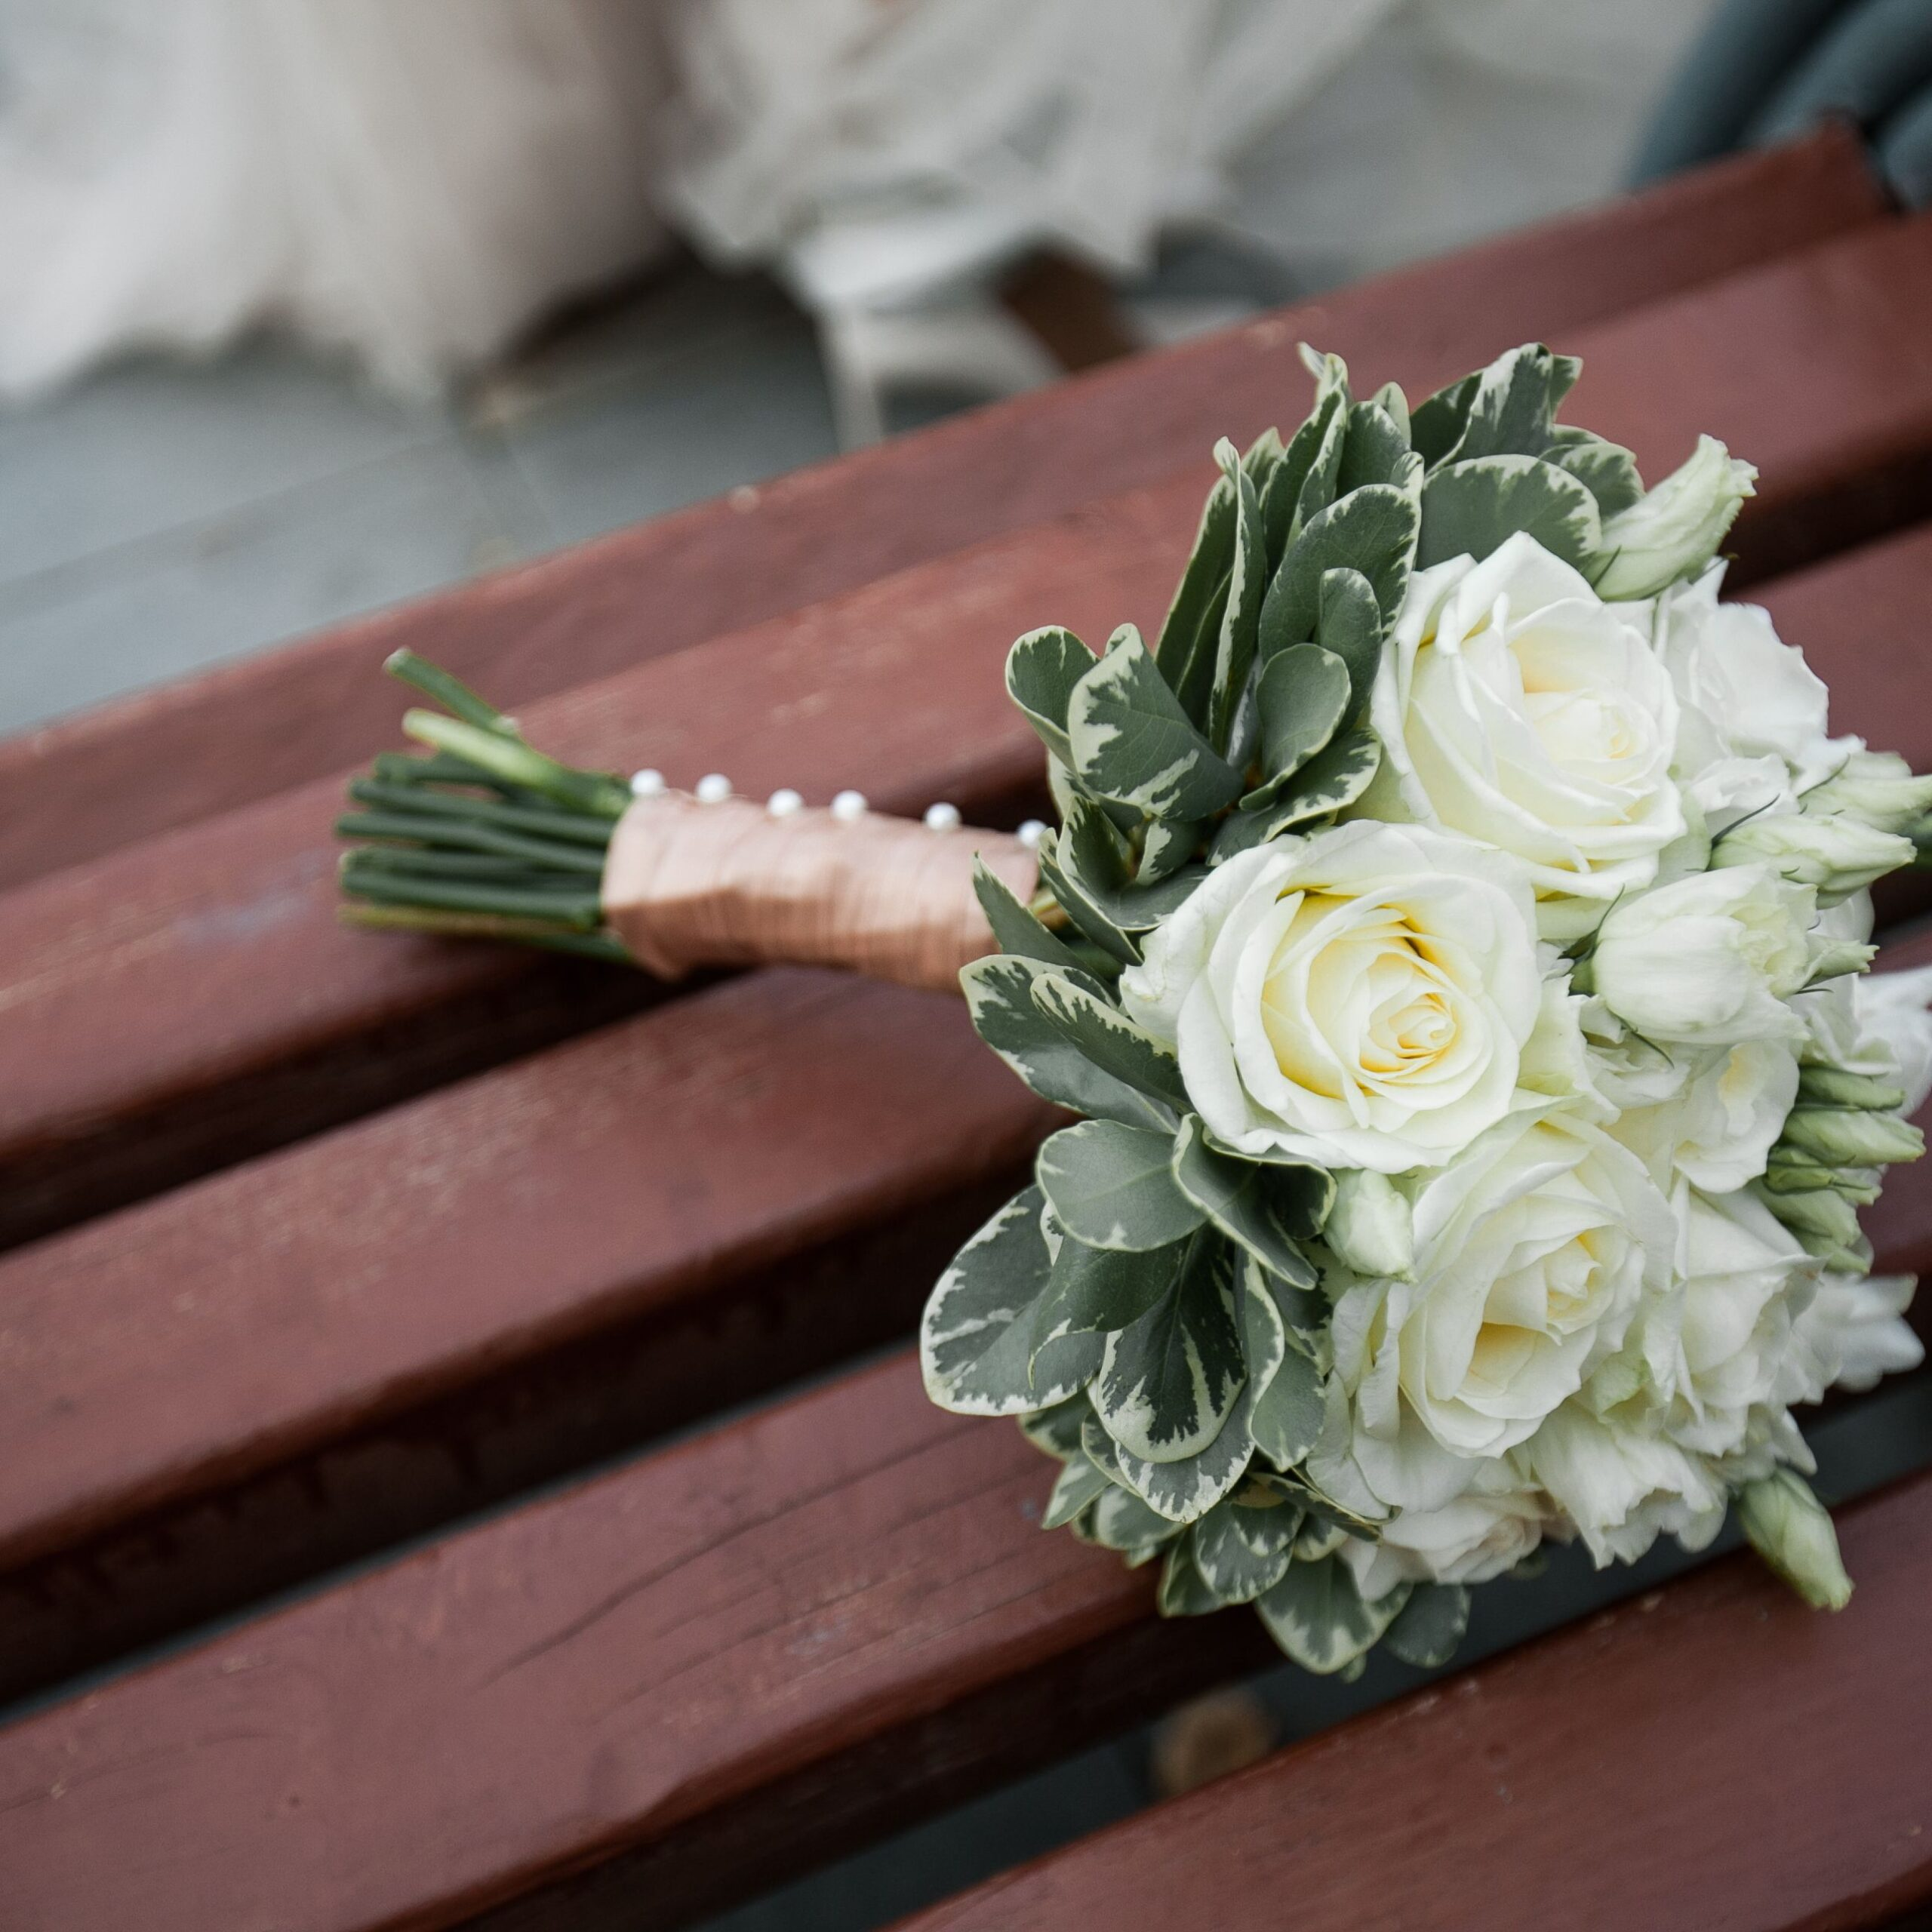 silk wedding bouquets to choose for the classy bridal 2 scaled - Silk Wedding Bouquets to Choose for The Classy Bridal